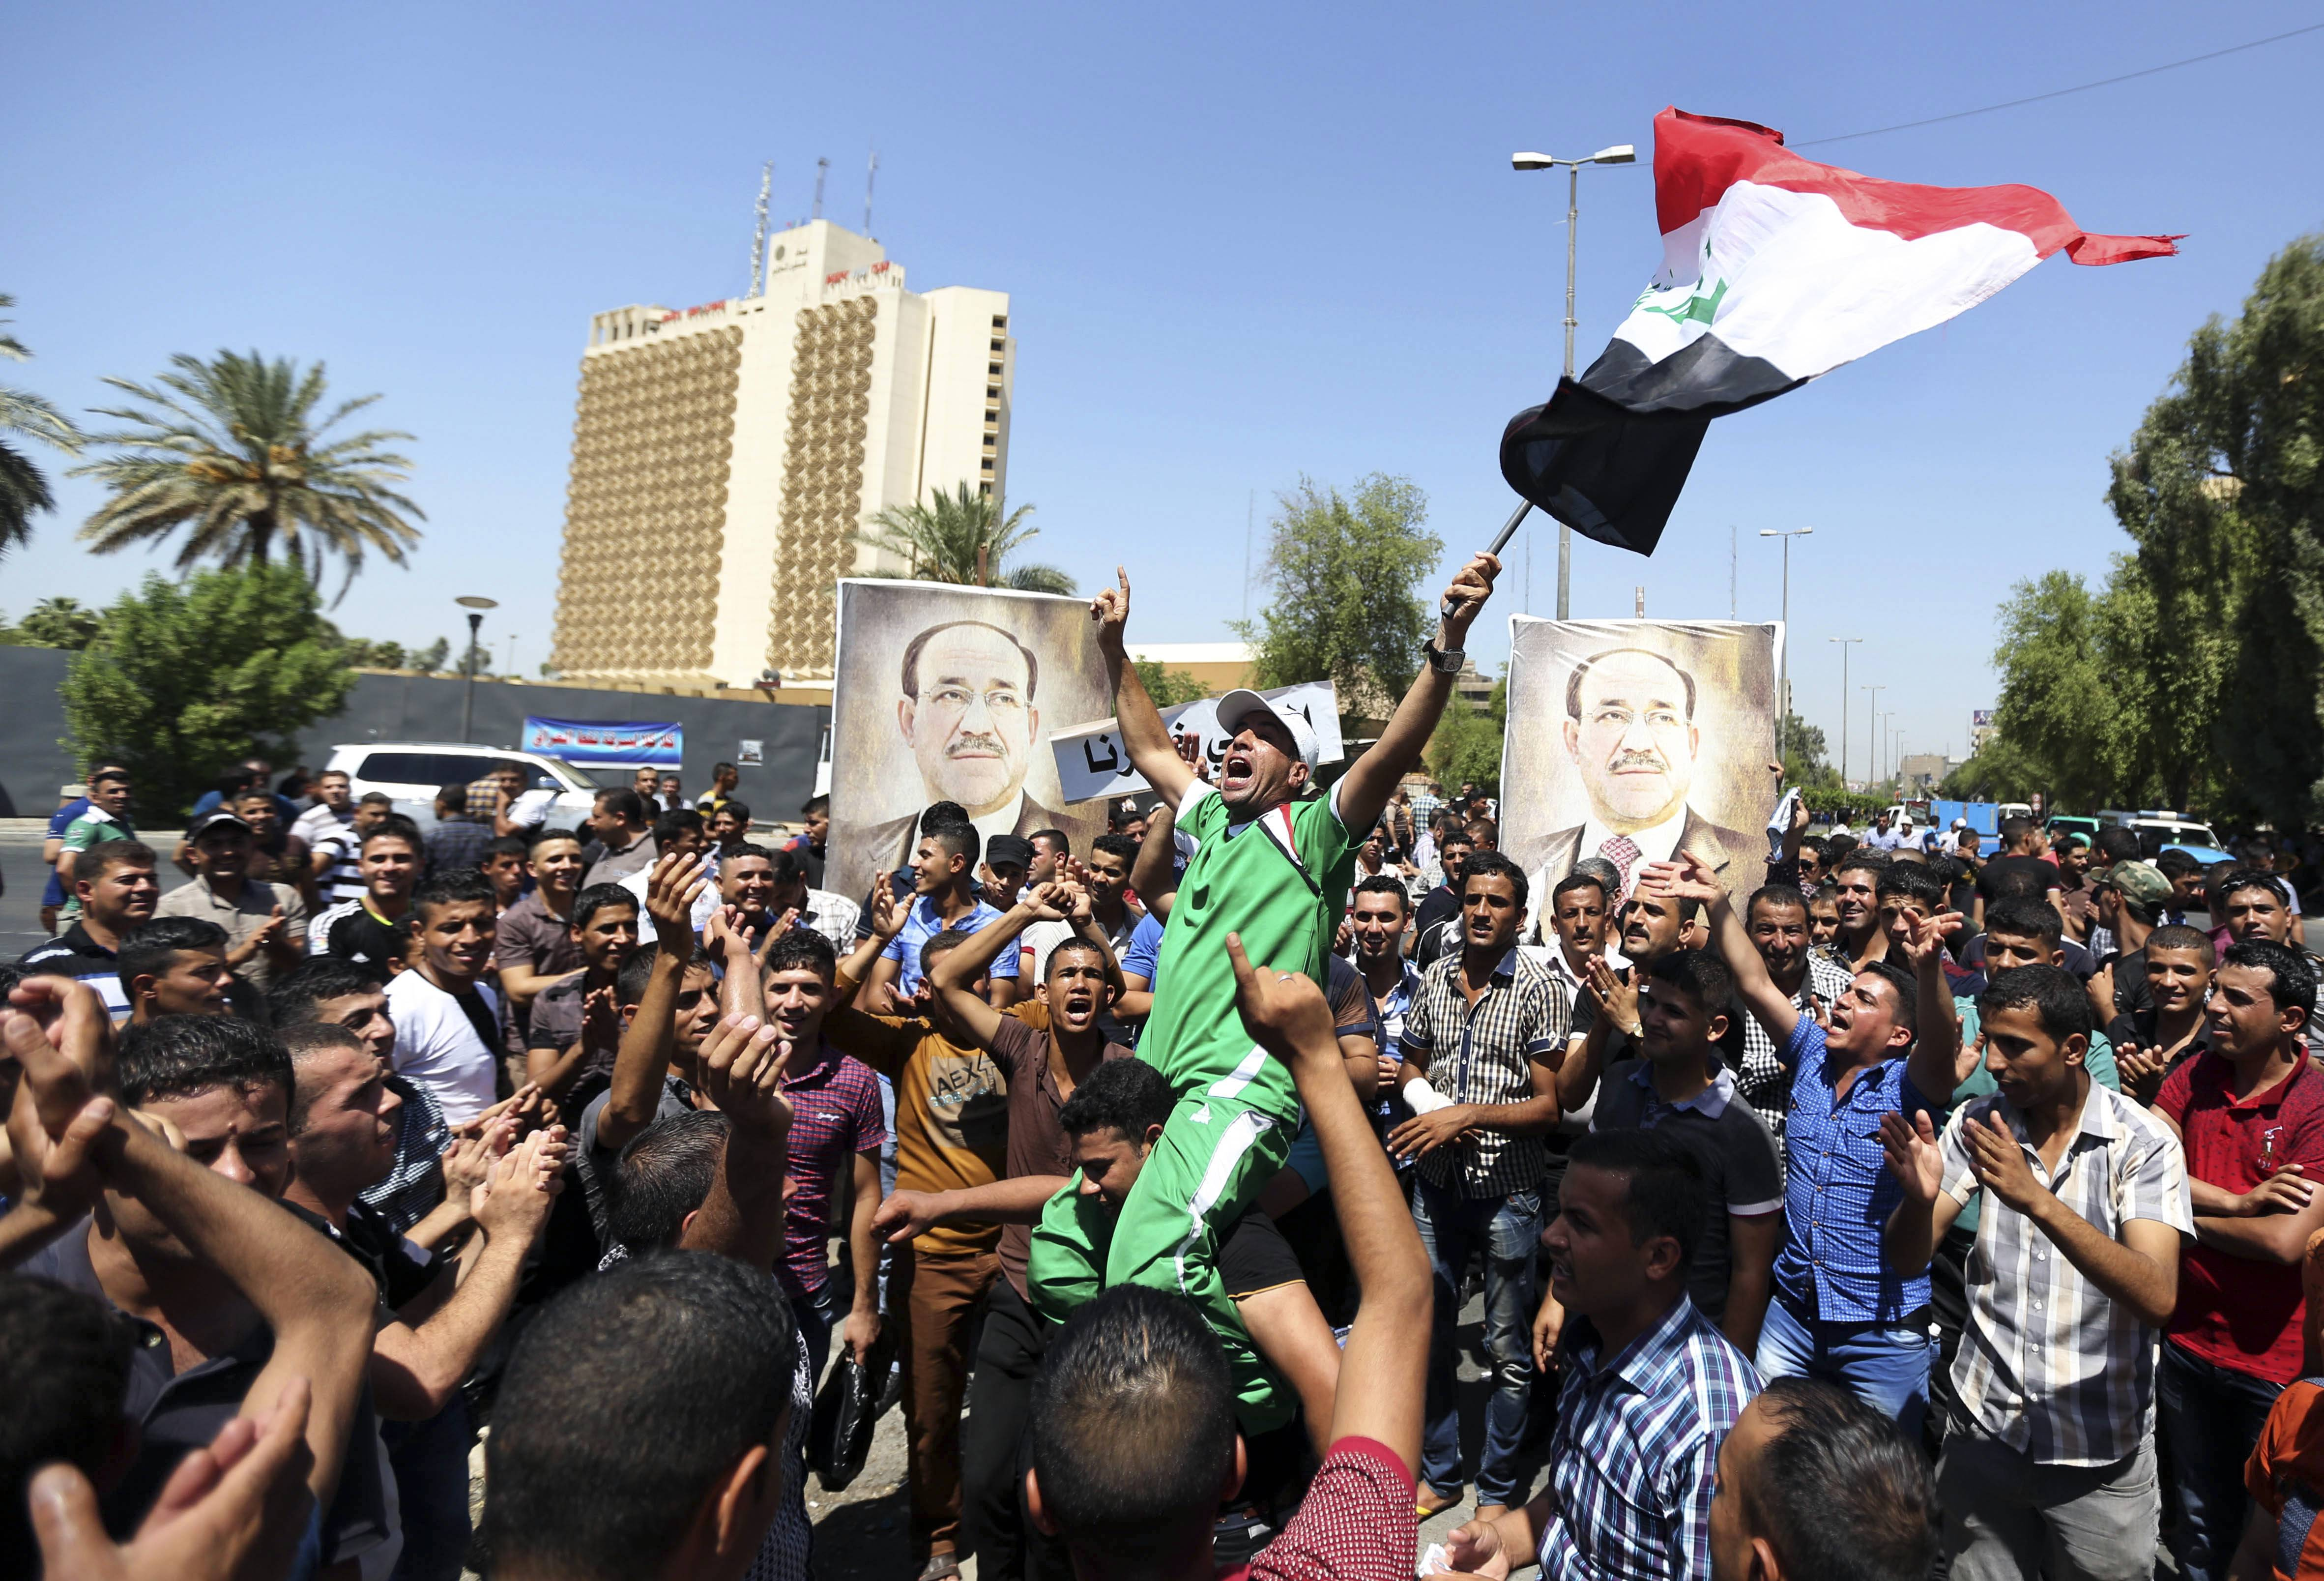 Iraqis chant pro-government slogans and wave national flags in a show of support for embattled Prime Minister Nouri al-Maliki during a demonstration in Baghdad, Iraq, Monday.